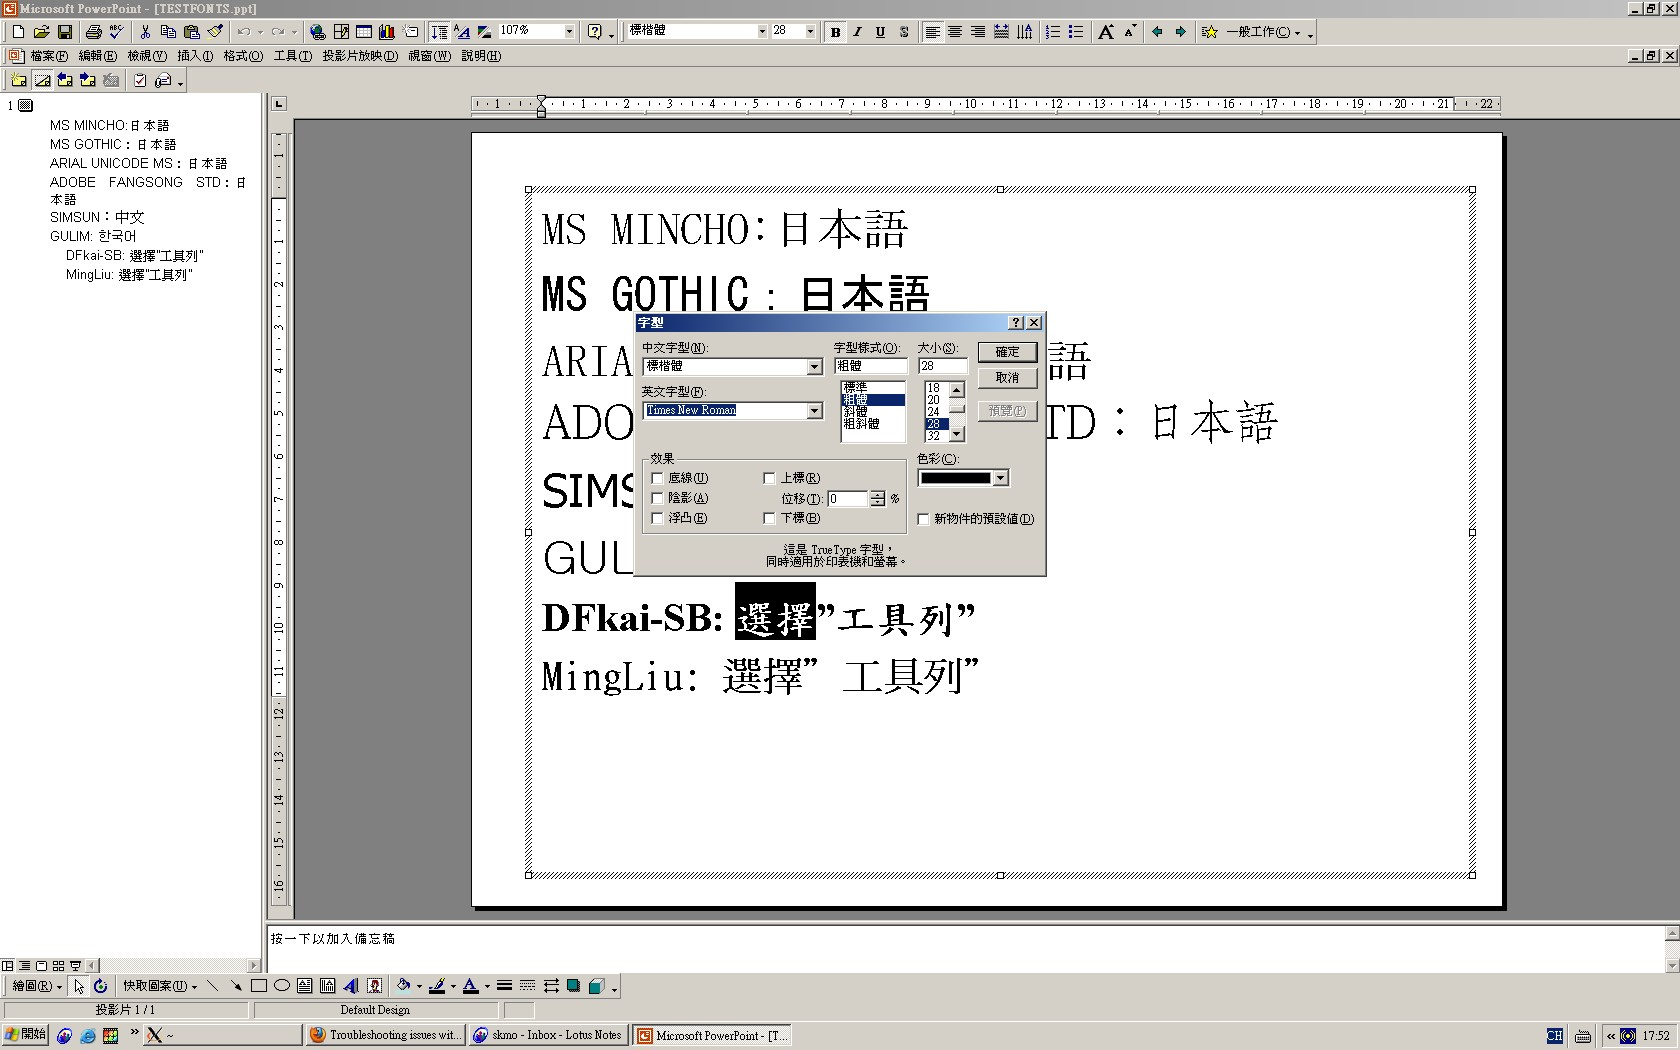 CONFSERVER-20461] Chinese (Traditional) fonts do not display in the